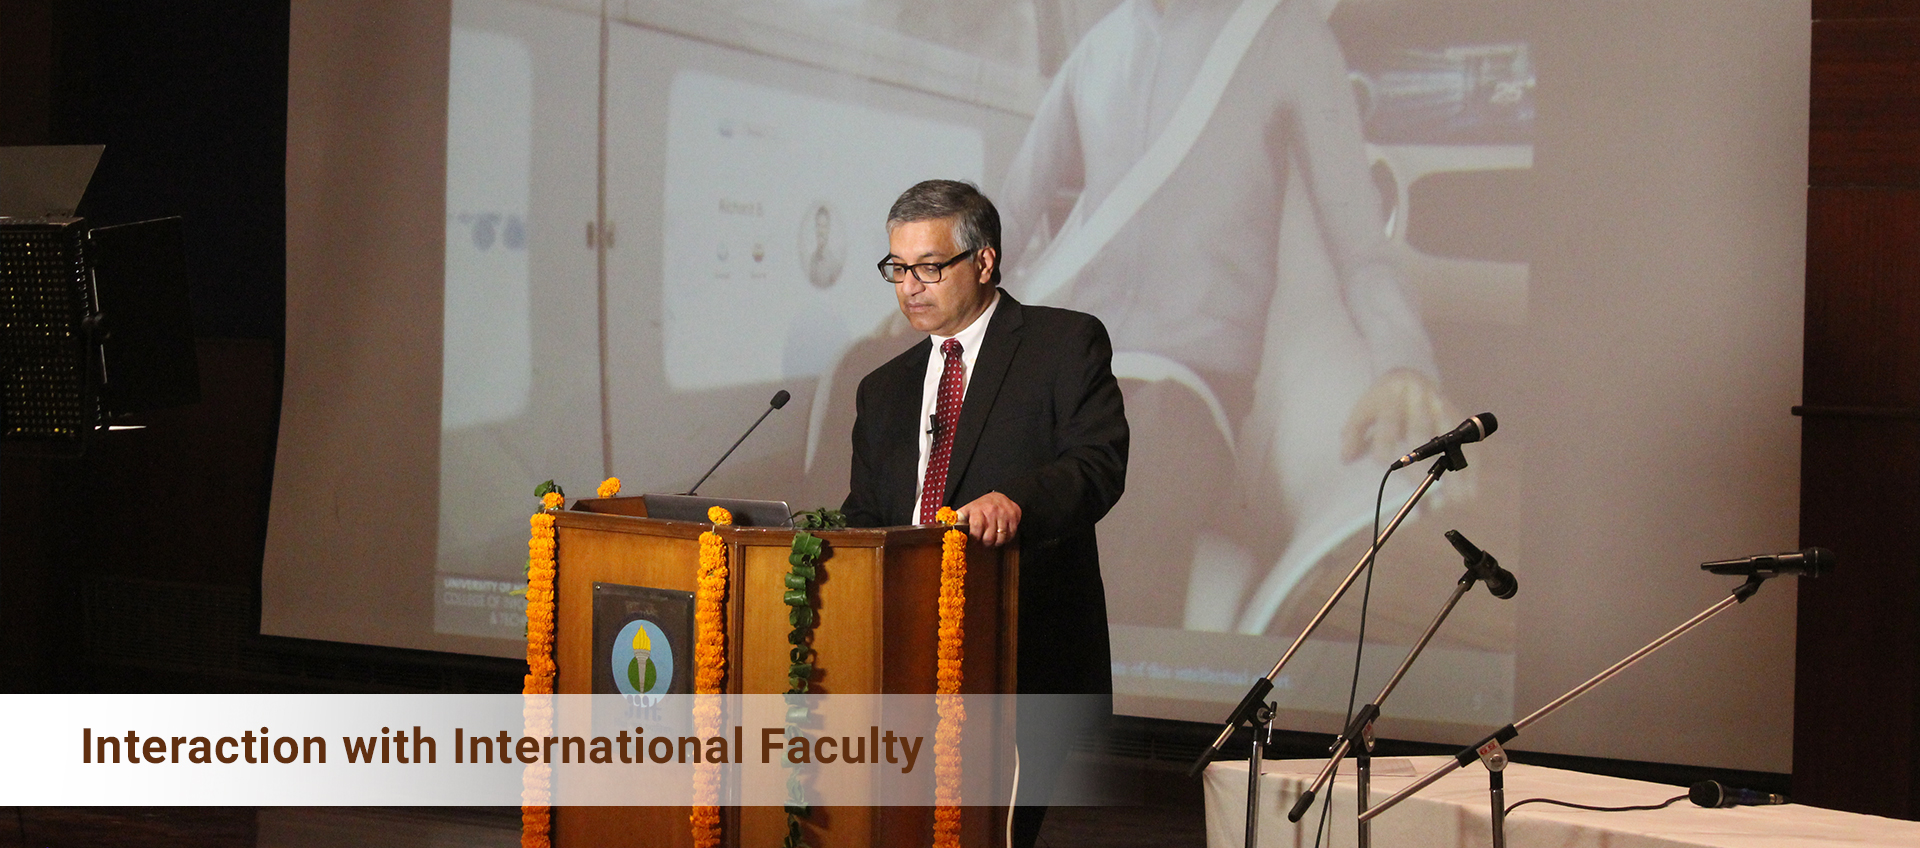 Interaction with International Faculty